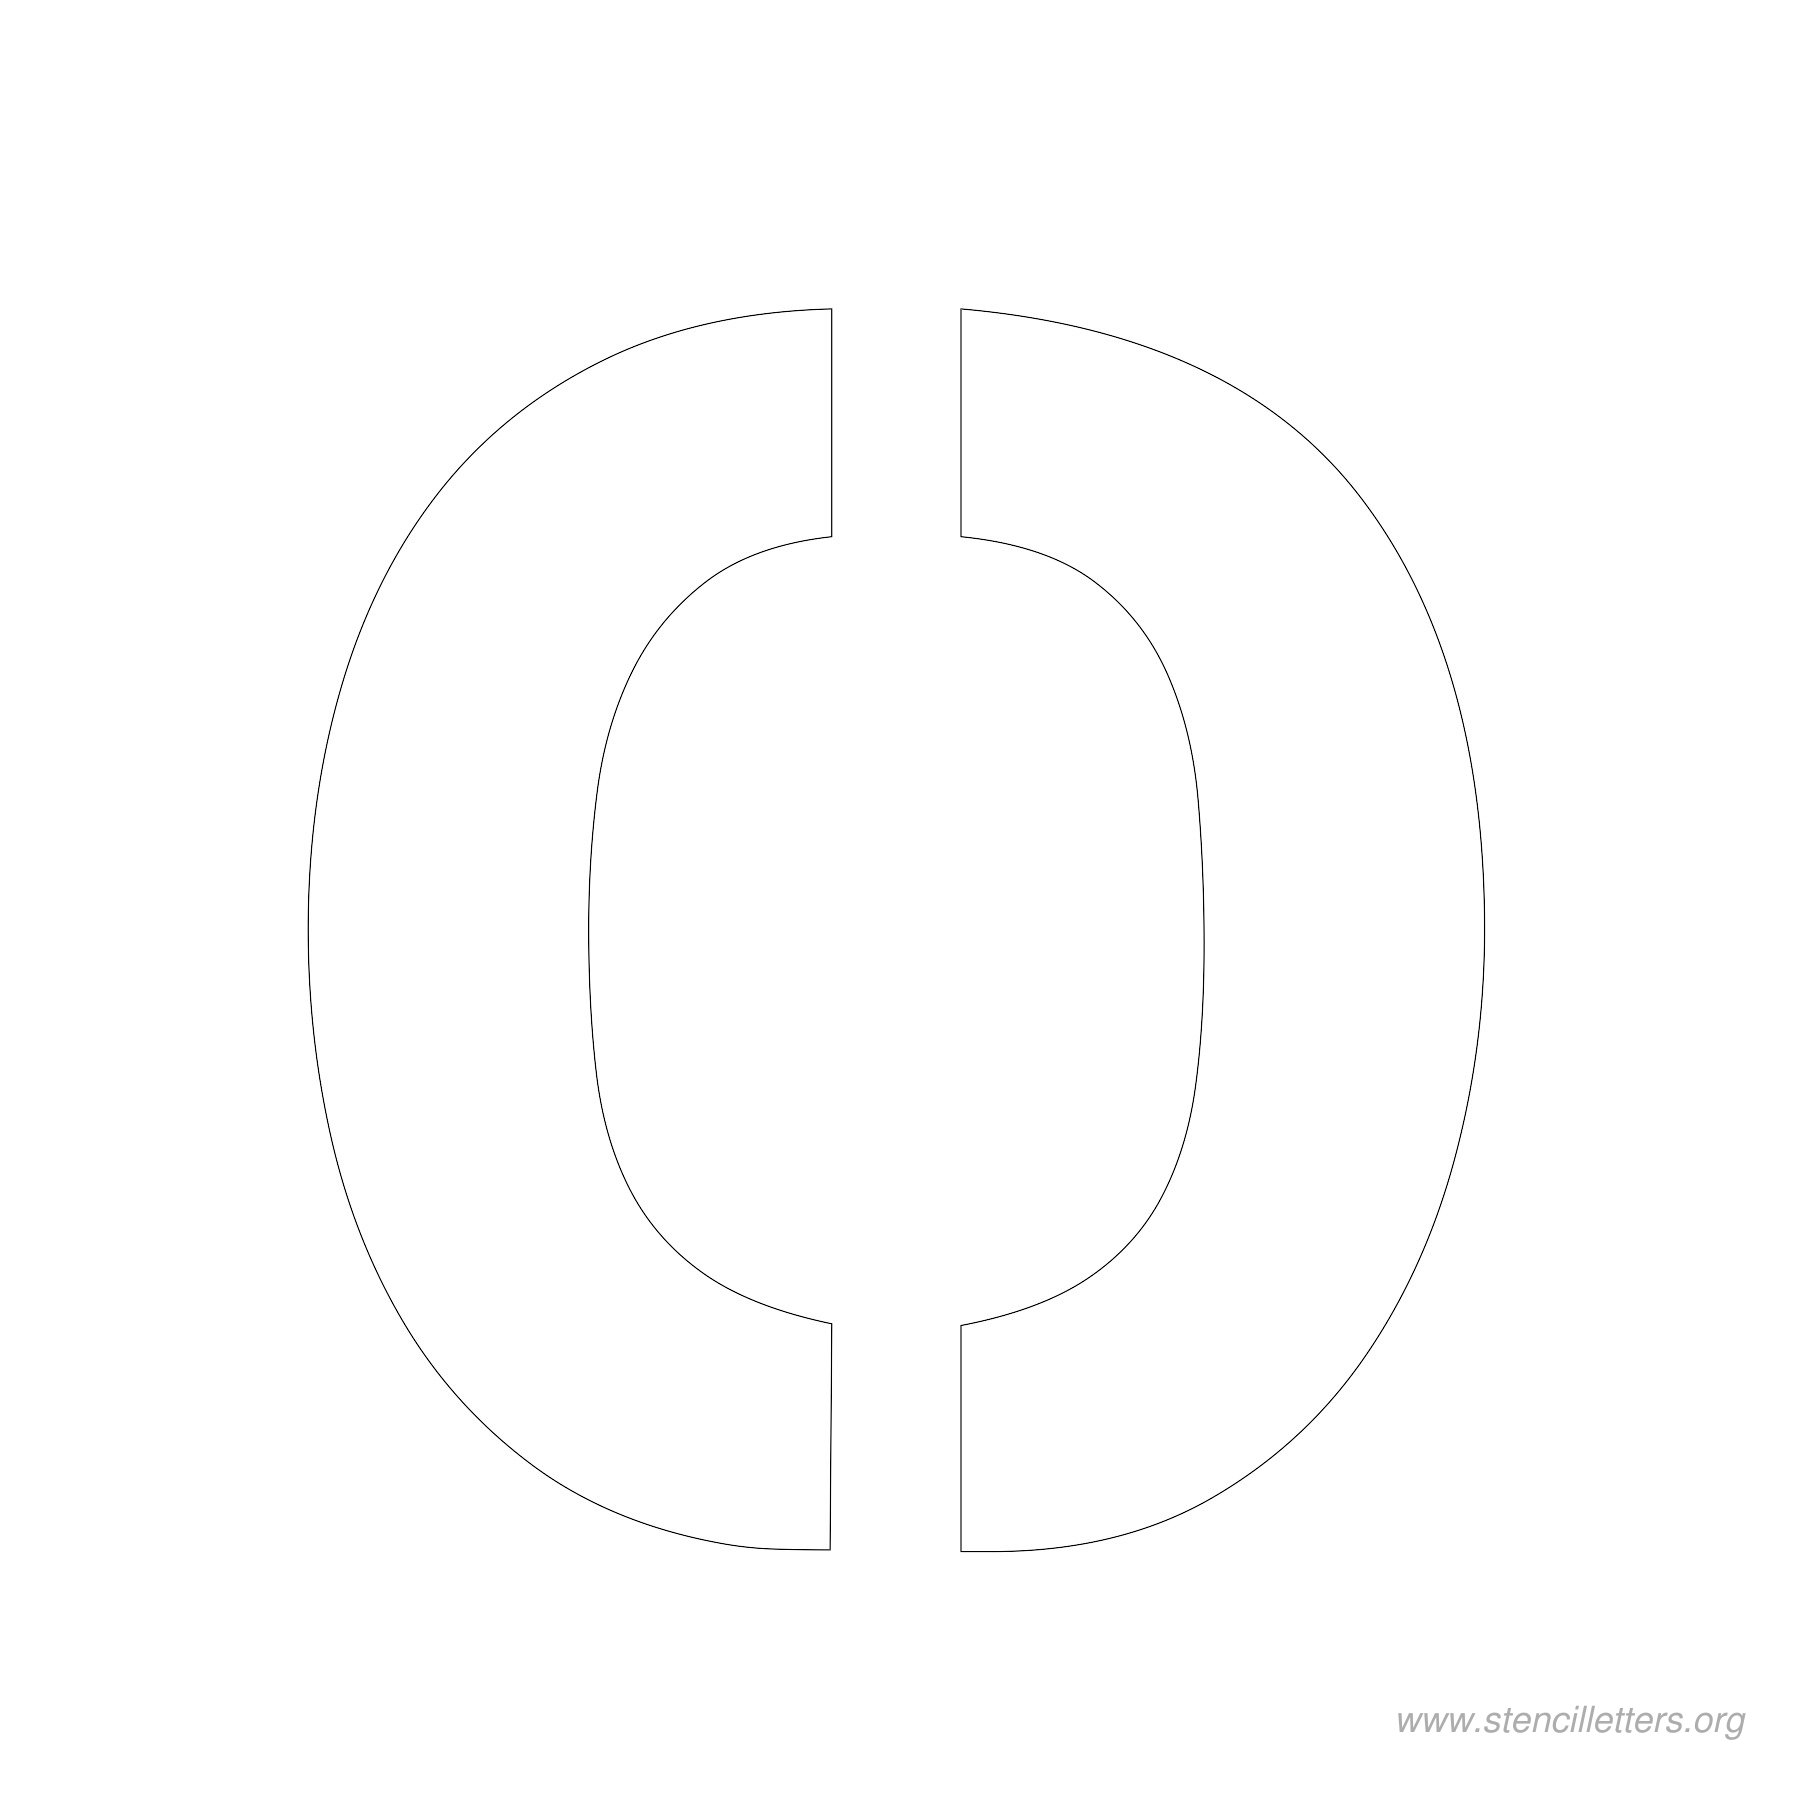 4-inch-letter-stencils-printable_413860  Inch Letter Templates on basic cover, sample request, sample business,